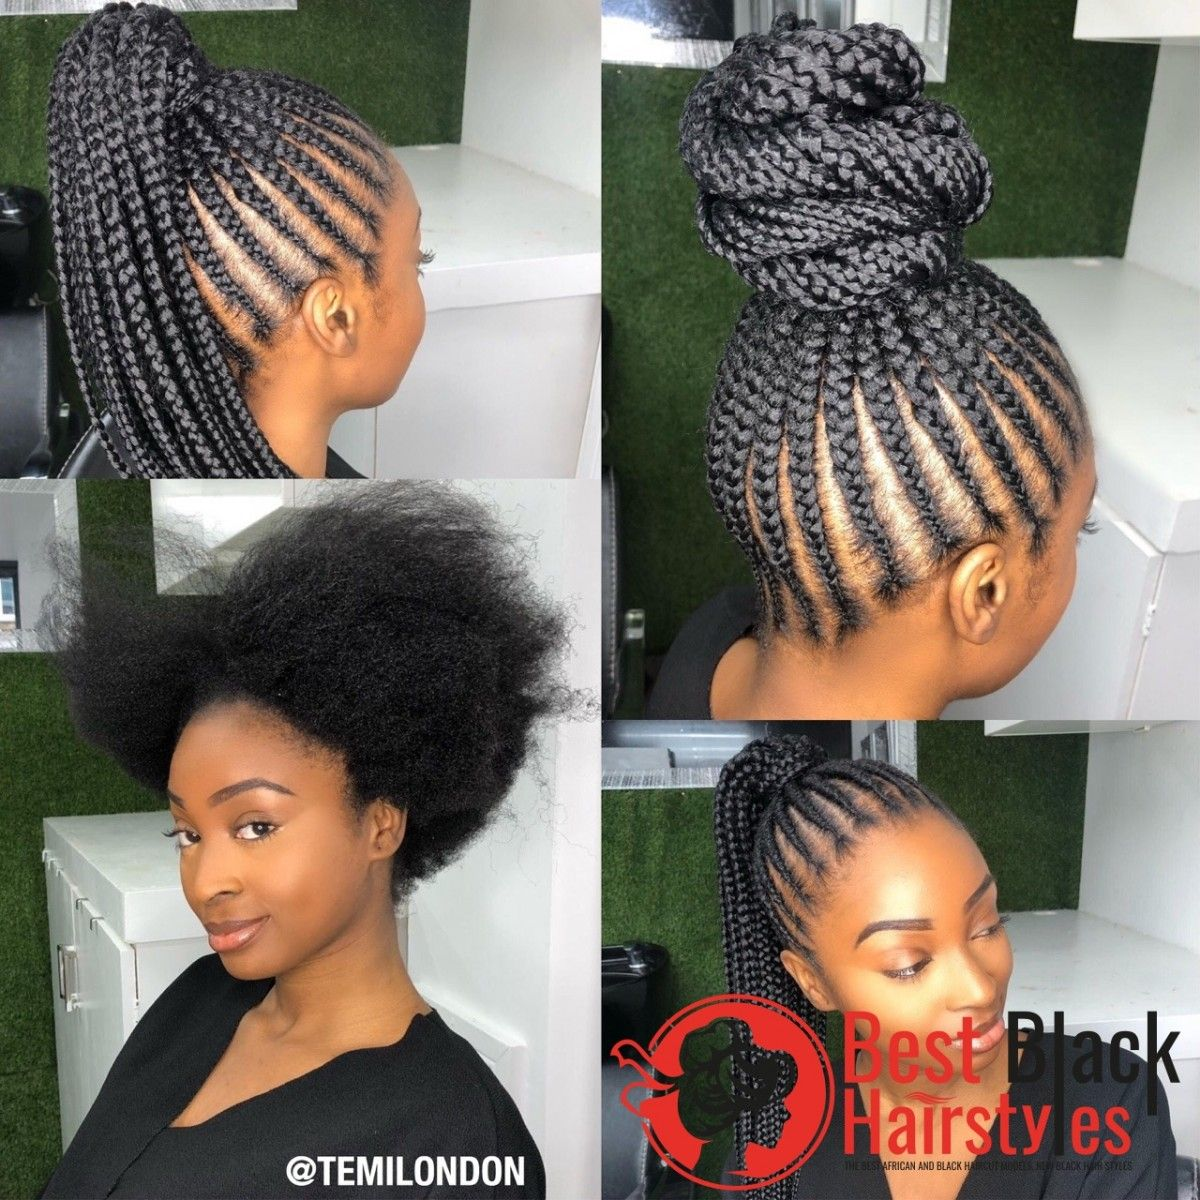 Amazing Hairstyles For African American Women Natural Hair Styles Feed In Braids Ponytail Cornrows Natural Hair